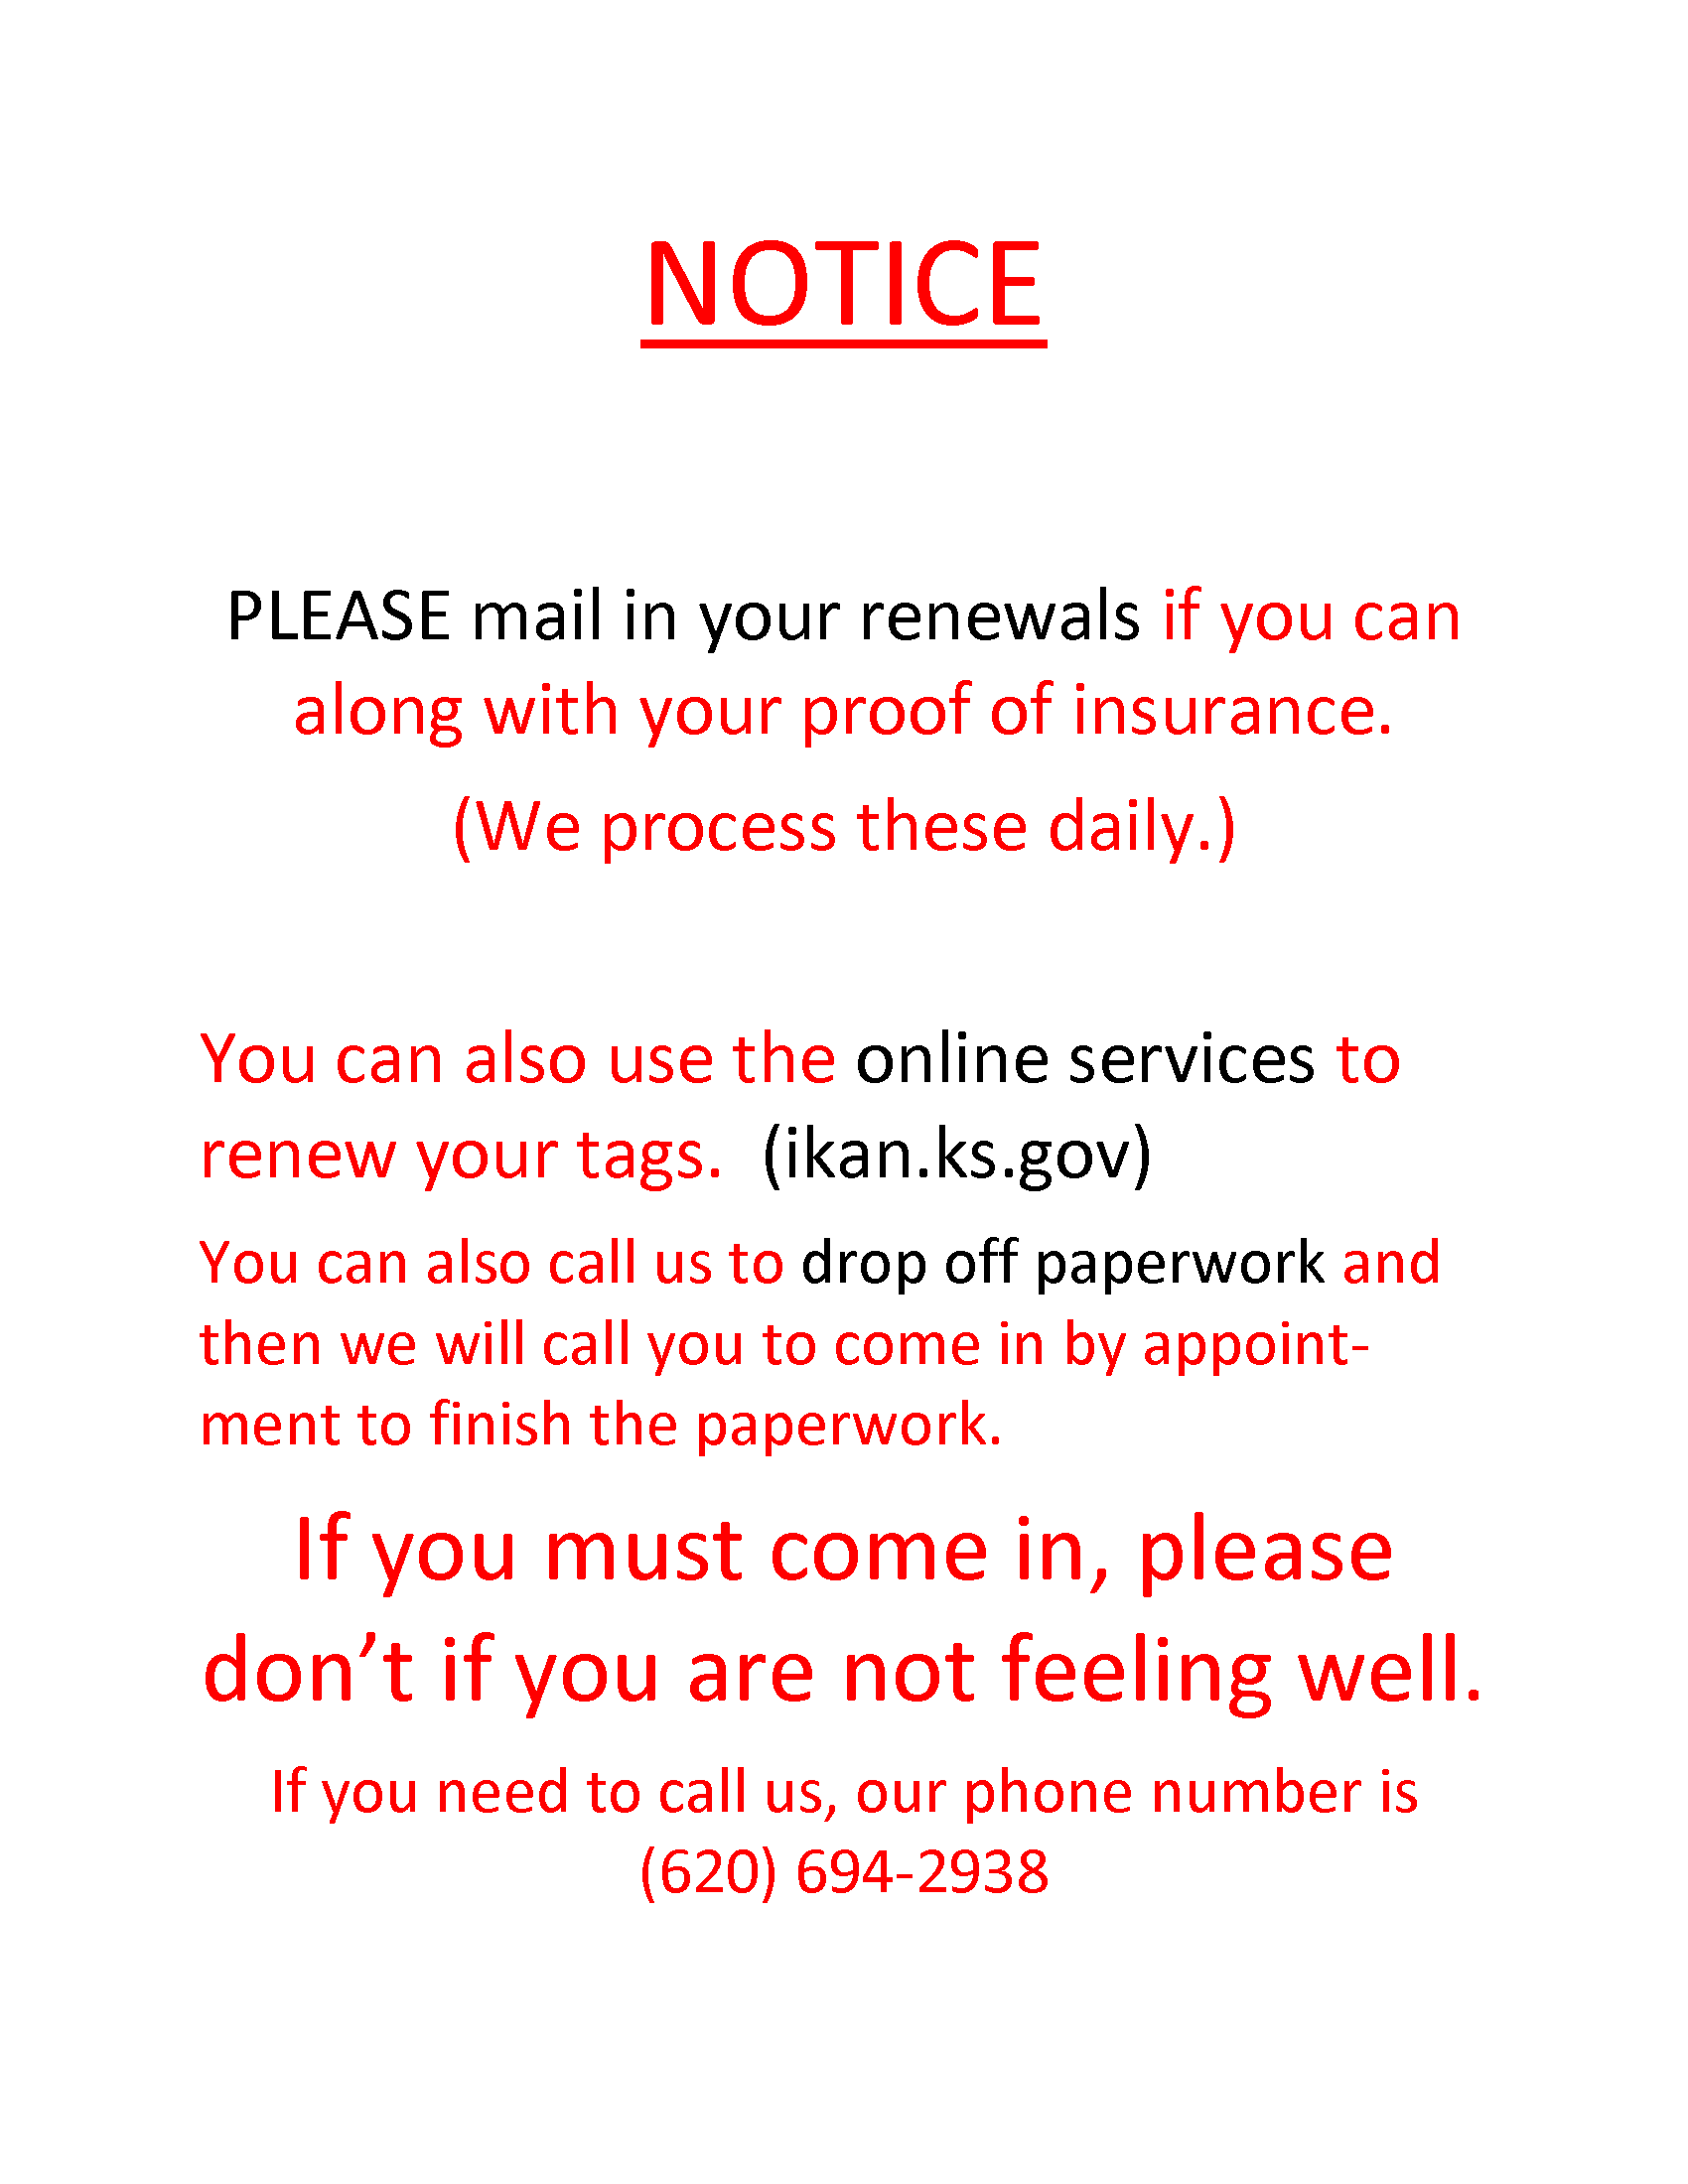 Notice to use other services or appts